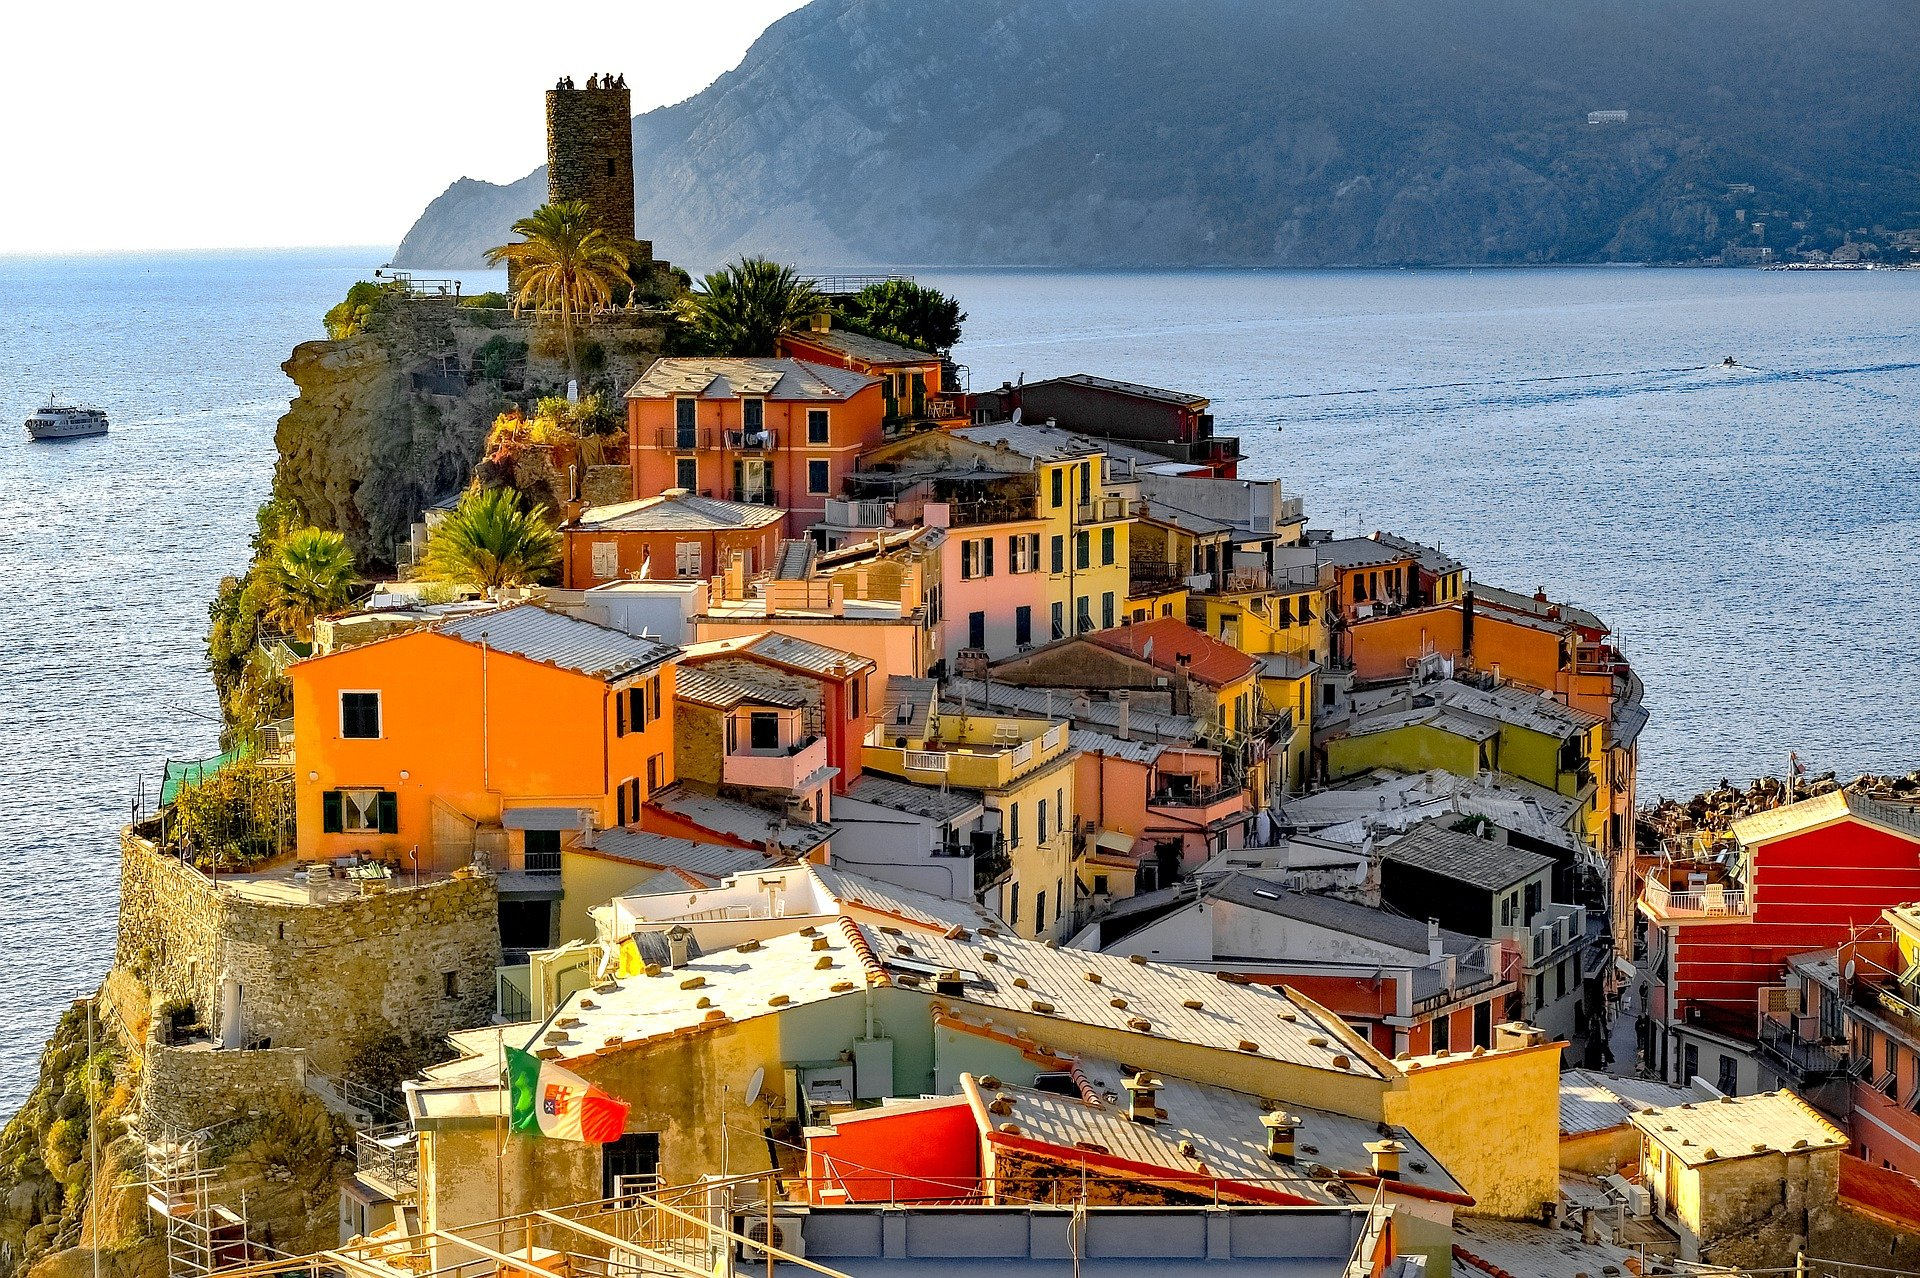 Vernazza is one of the towns you can visit on day trips from Florence to Cinque Terre